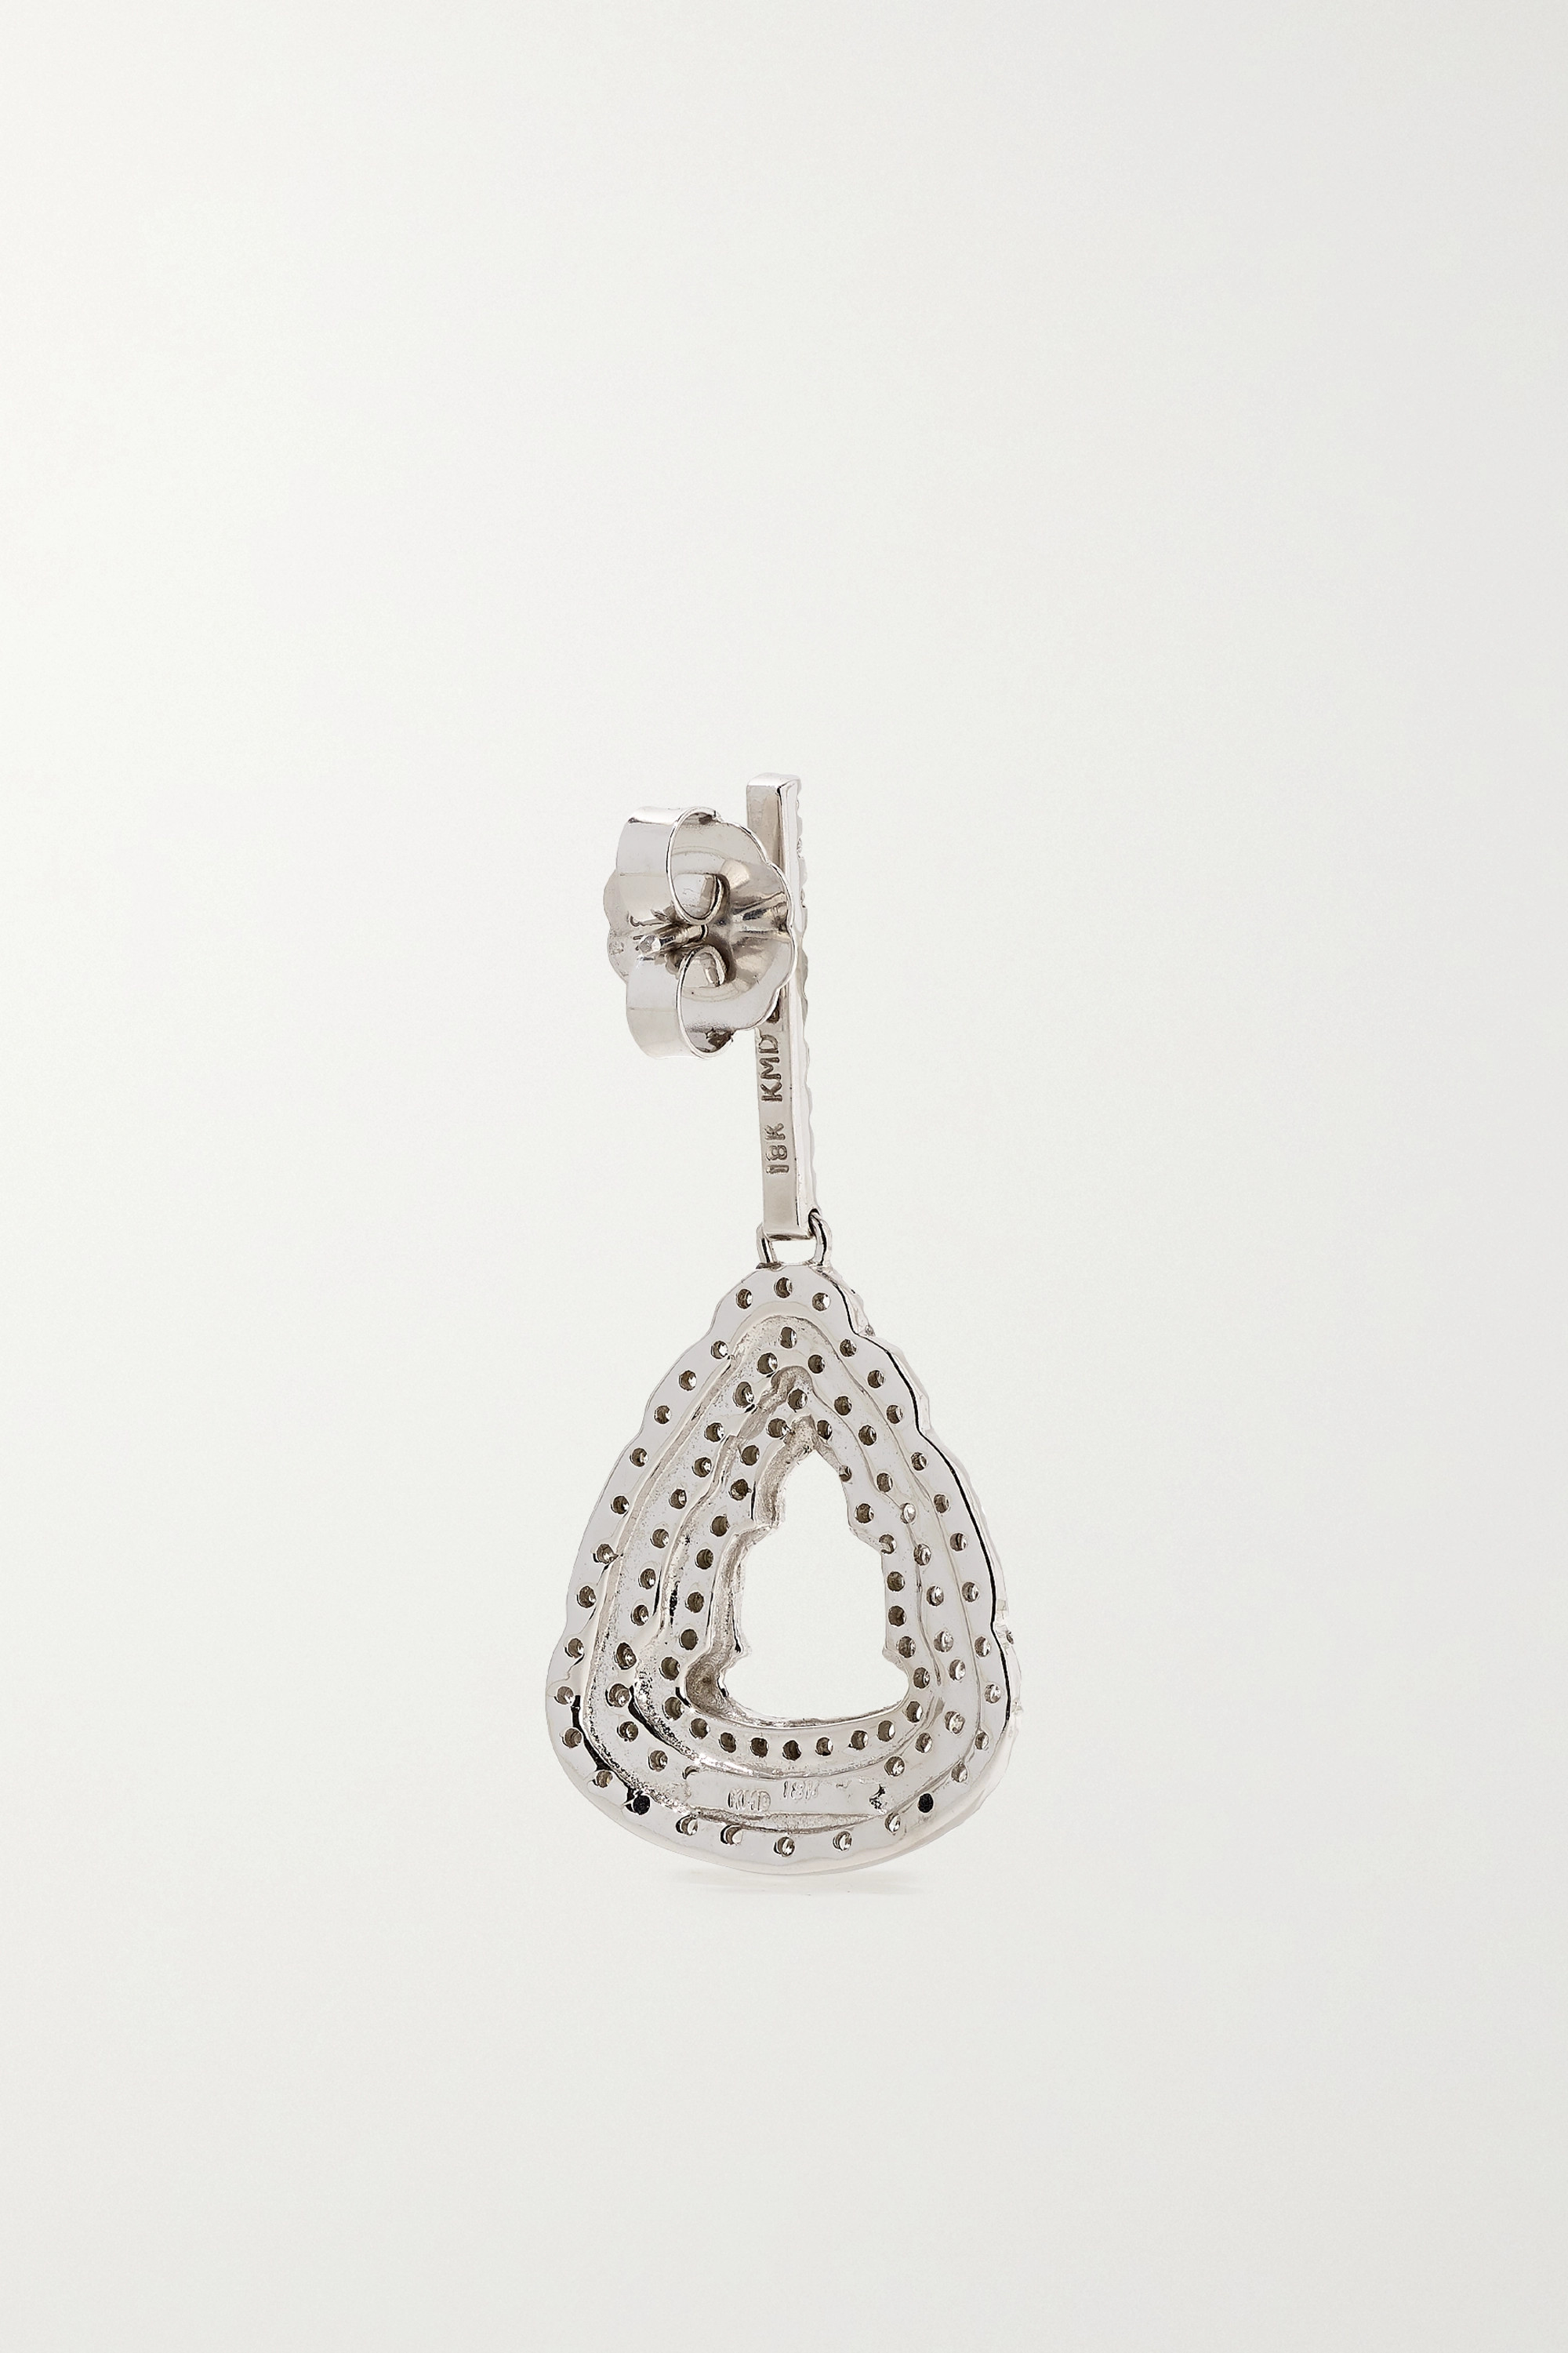 White Gold + Net Sustain 18-karat Diamond Earrings | Kimberly Mcdonald